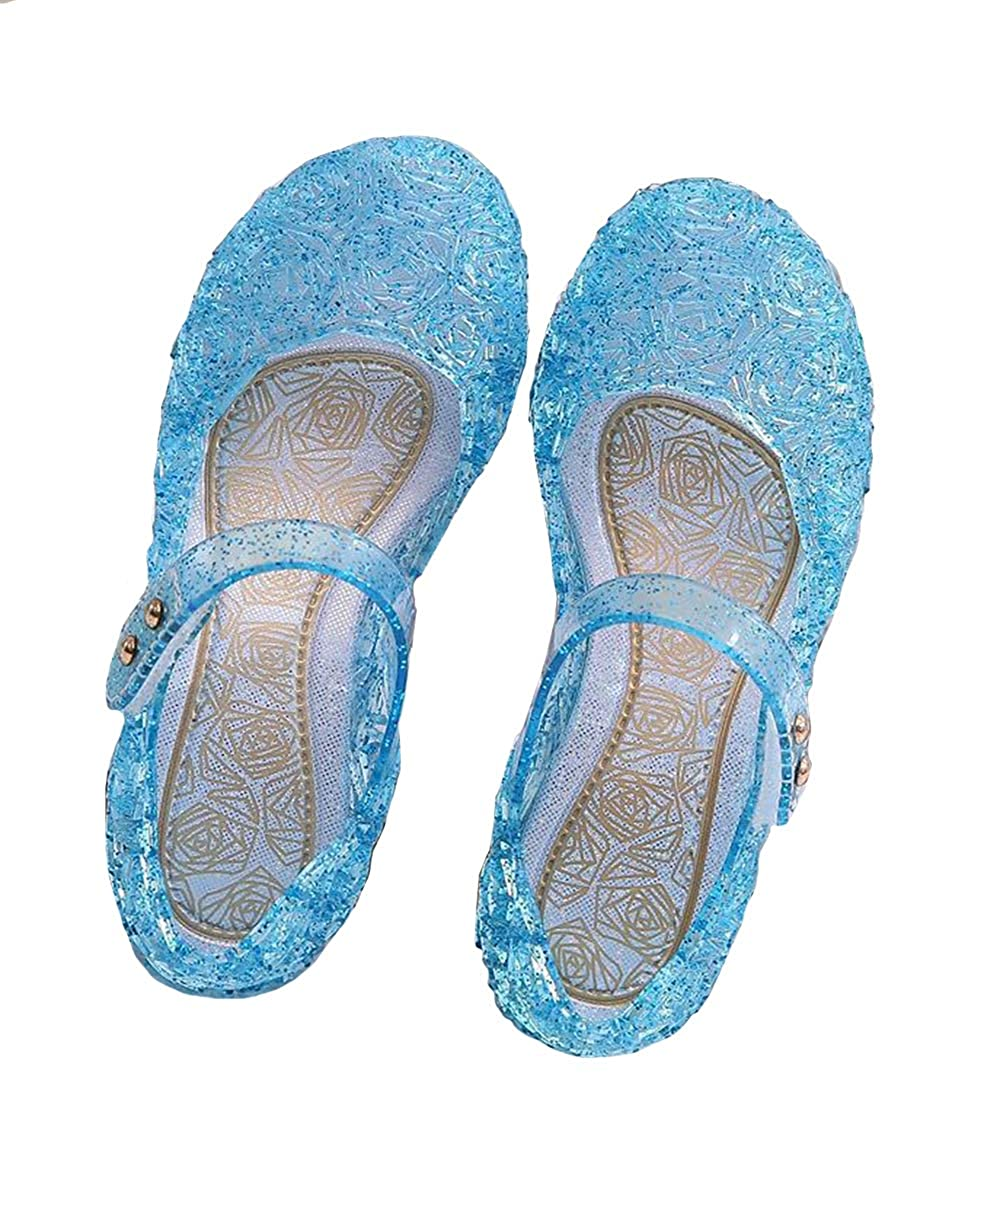 Ortarco Toddler Girls Princess Sandal Jelly Mary Jane Flat Costume Cosplay Dance Shoes for Little Kid